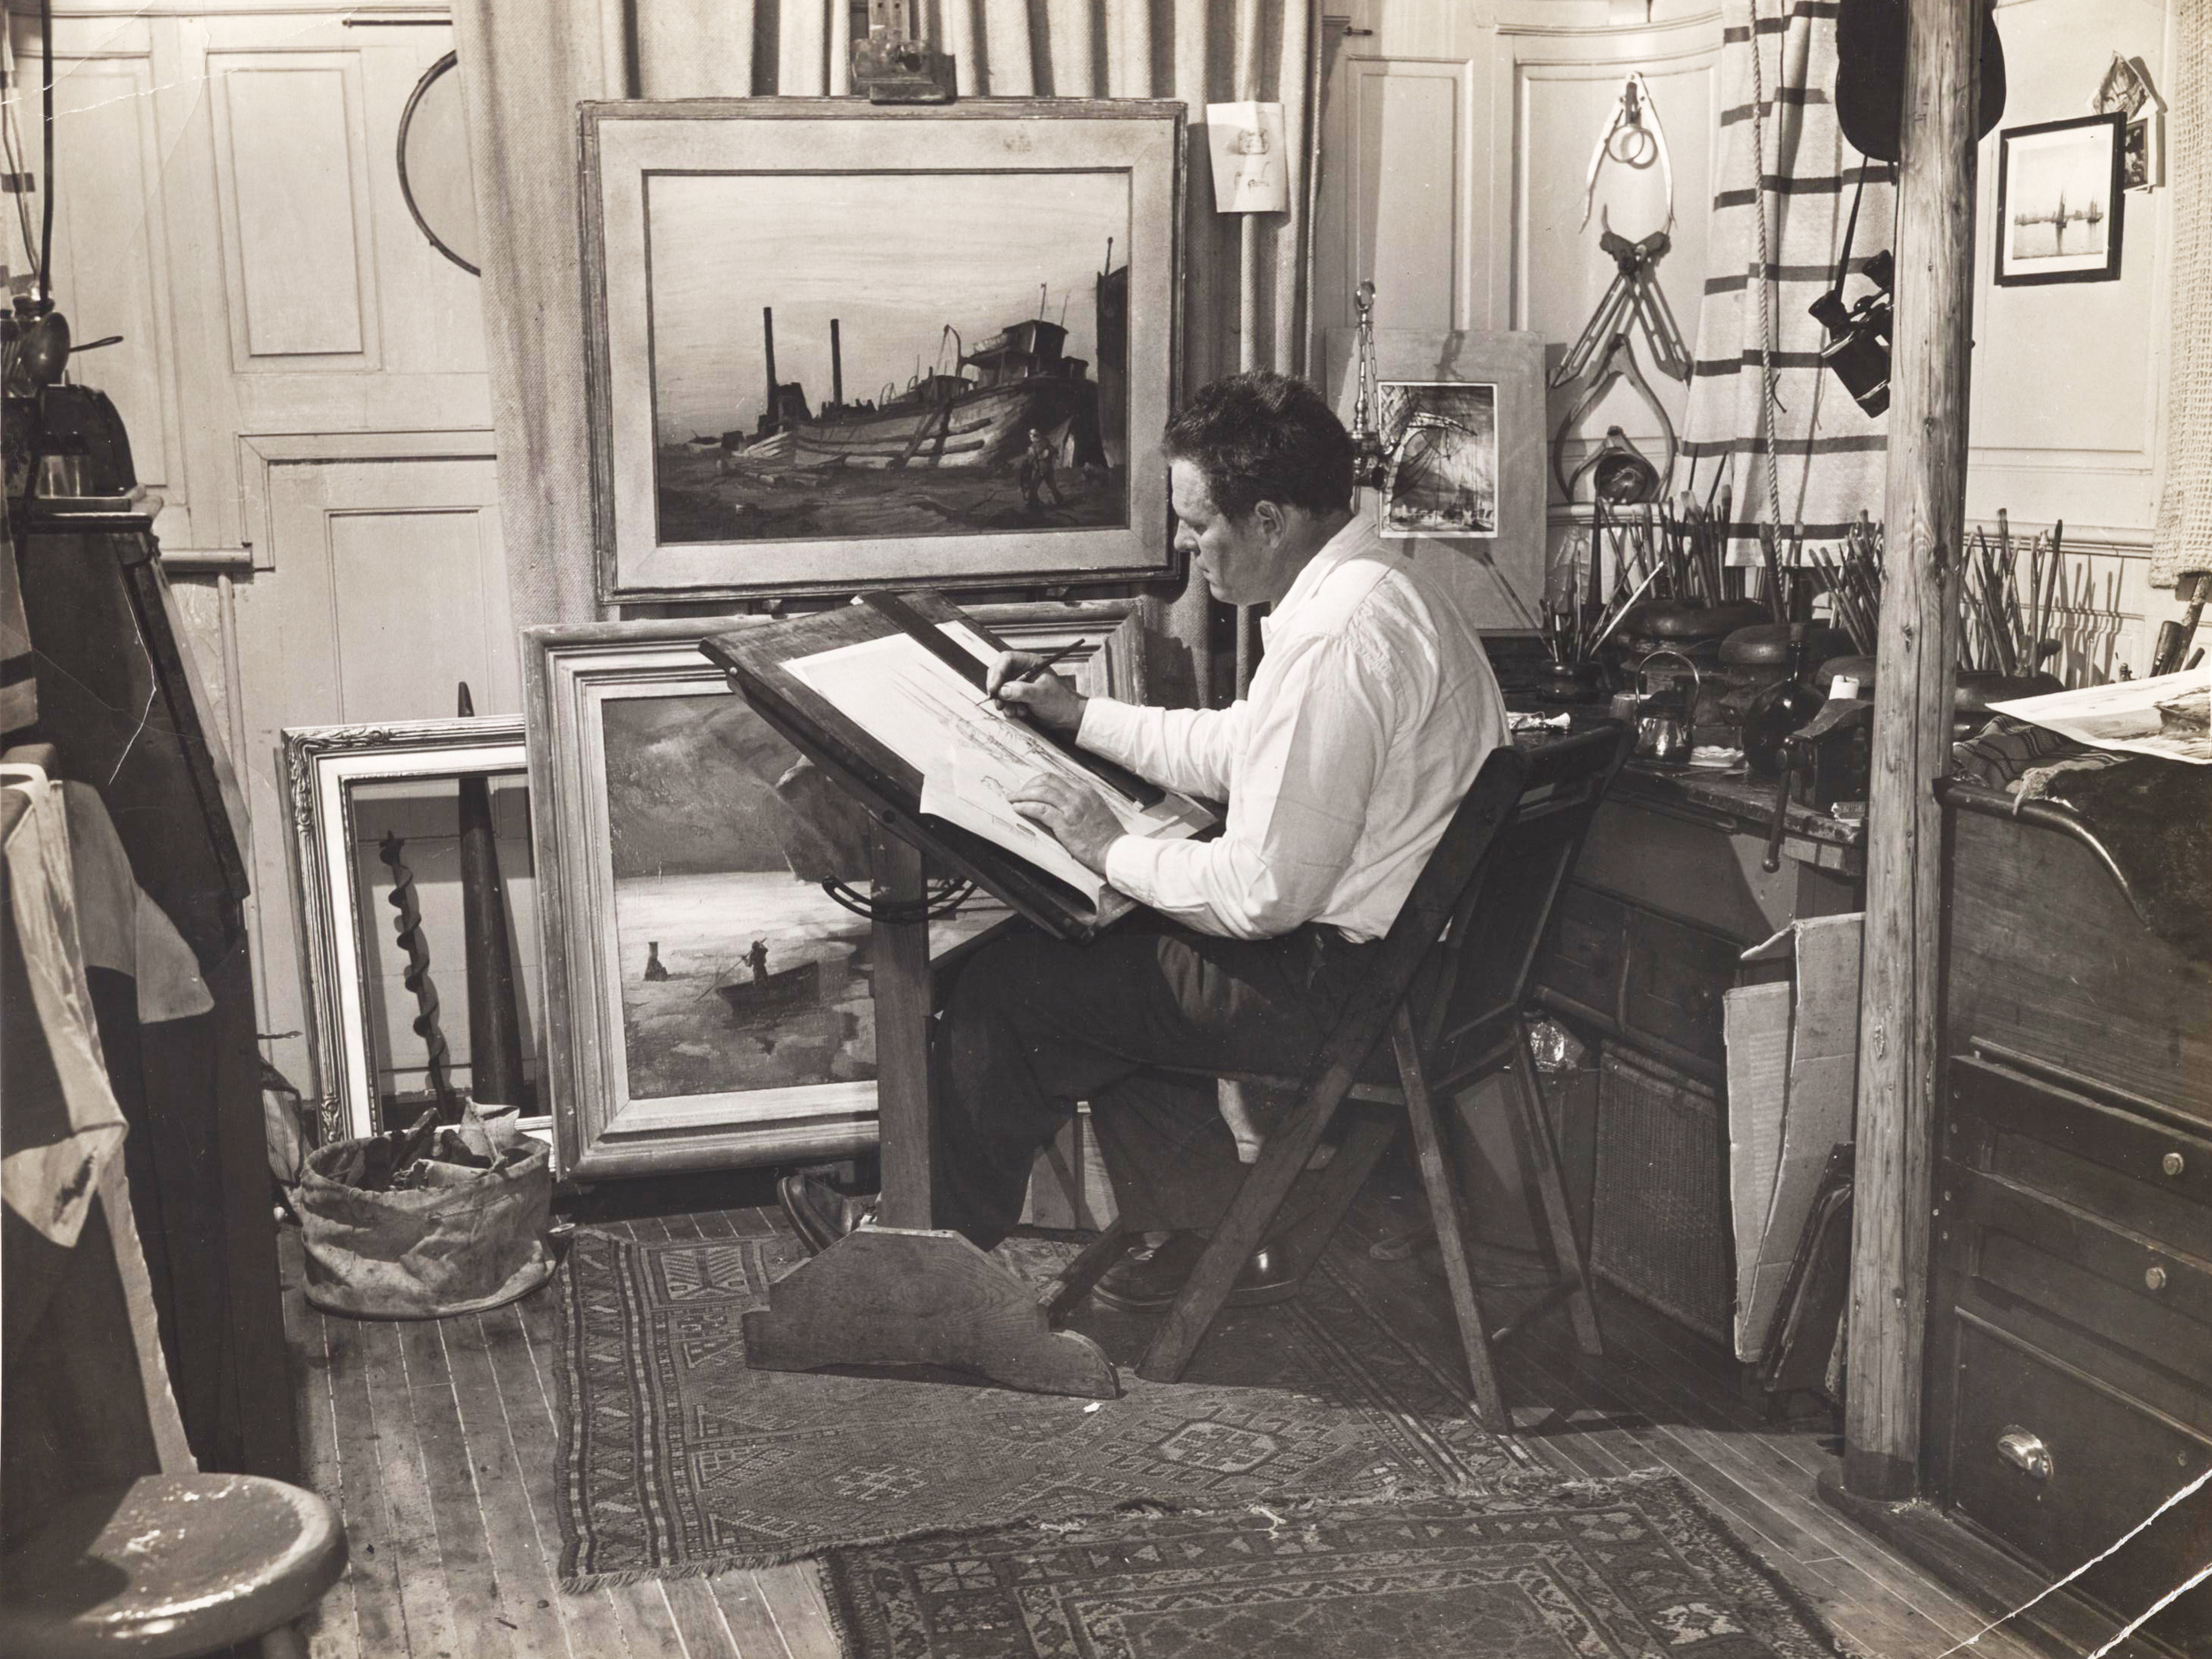 Frank Rino (dates unknown), Noble aboard the houseboat studio, Photograph, 1948, Reprinted from the original photographs in the  New York Journal American , The Noble Maritime Collection